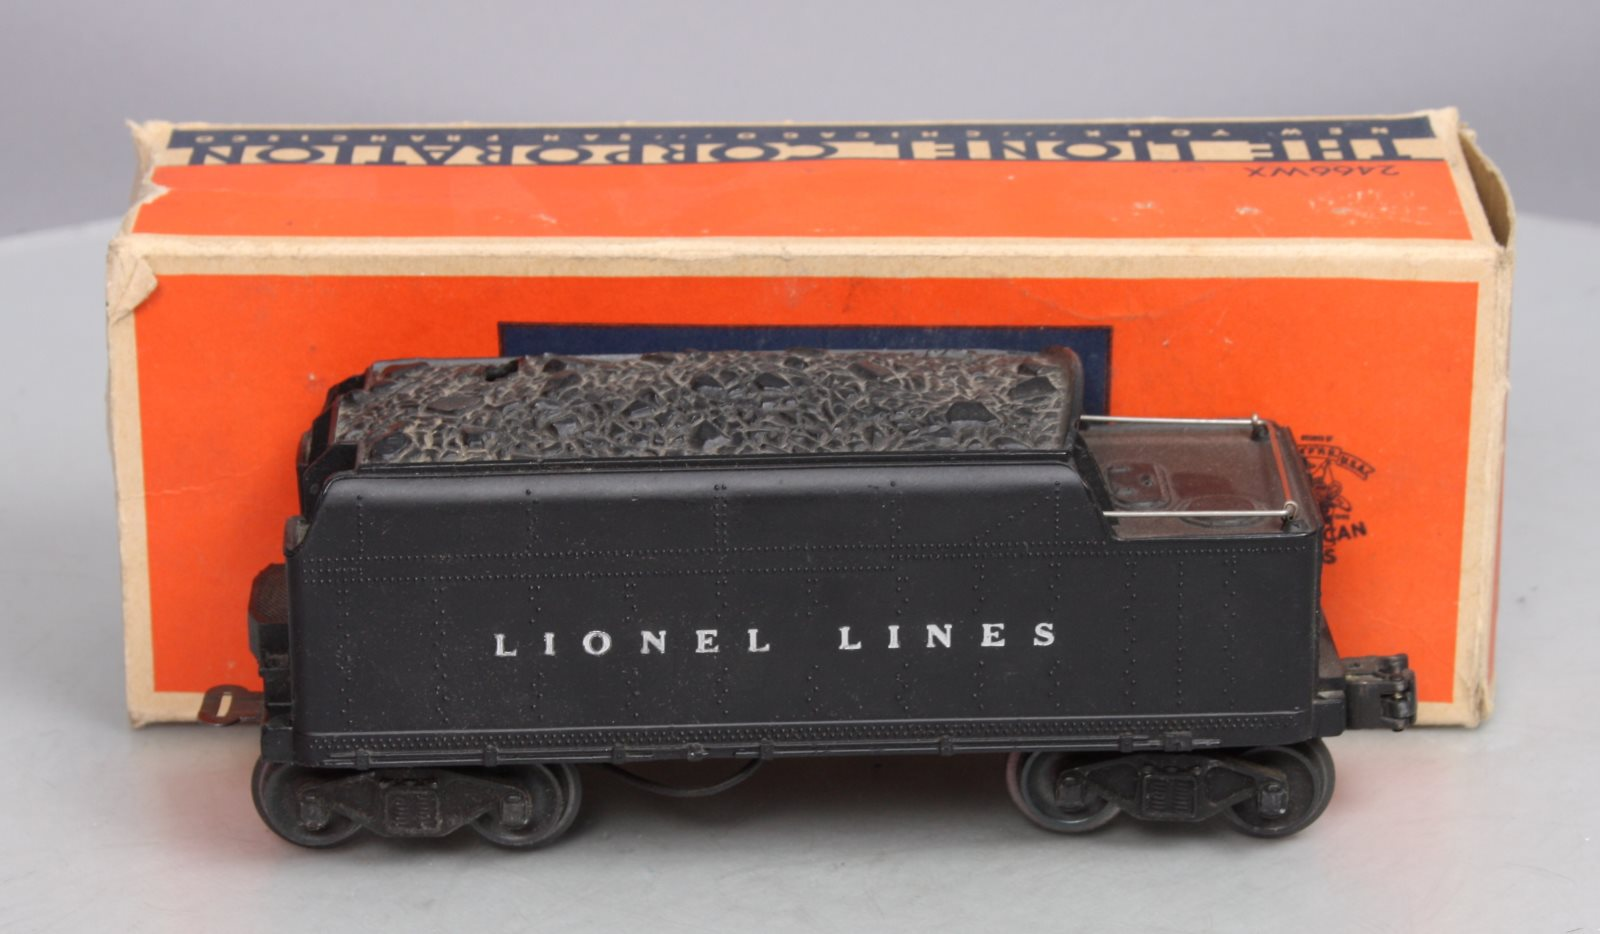 Buy Lionel 2466WX Lionel Lines Whistling Tender/Box | Trainz Auctions